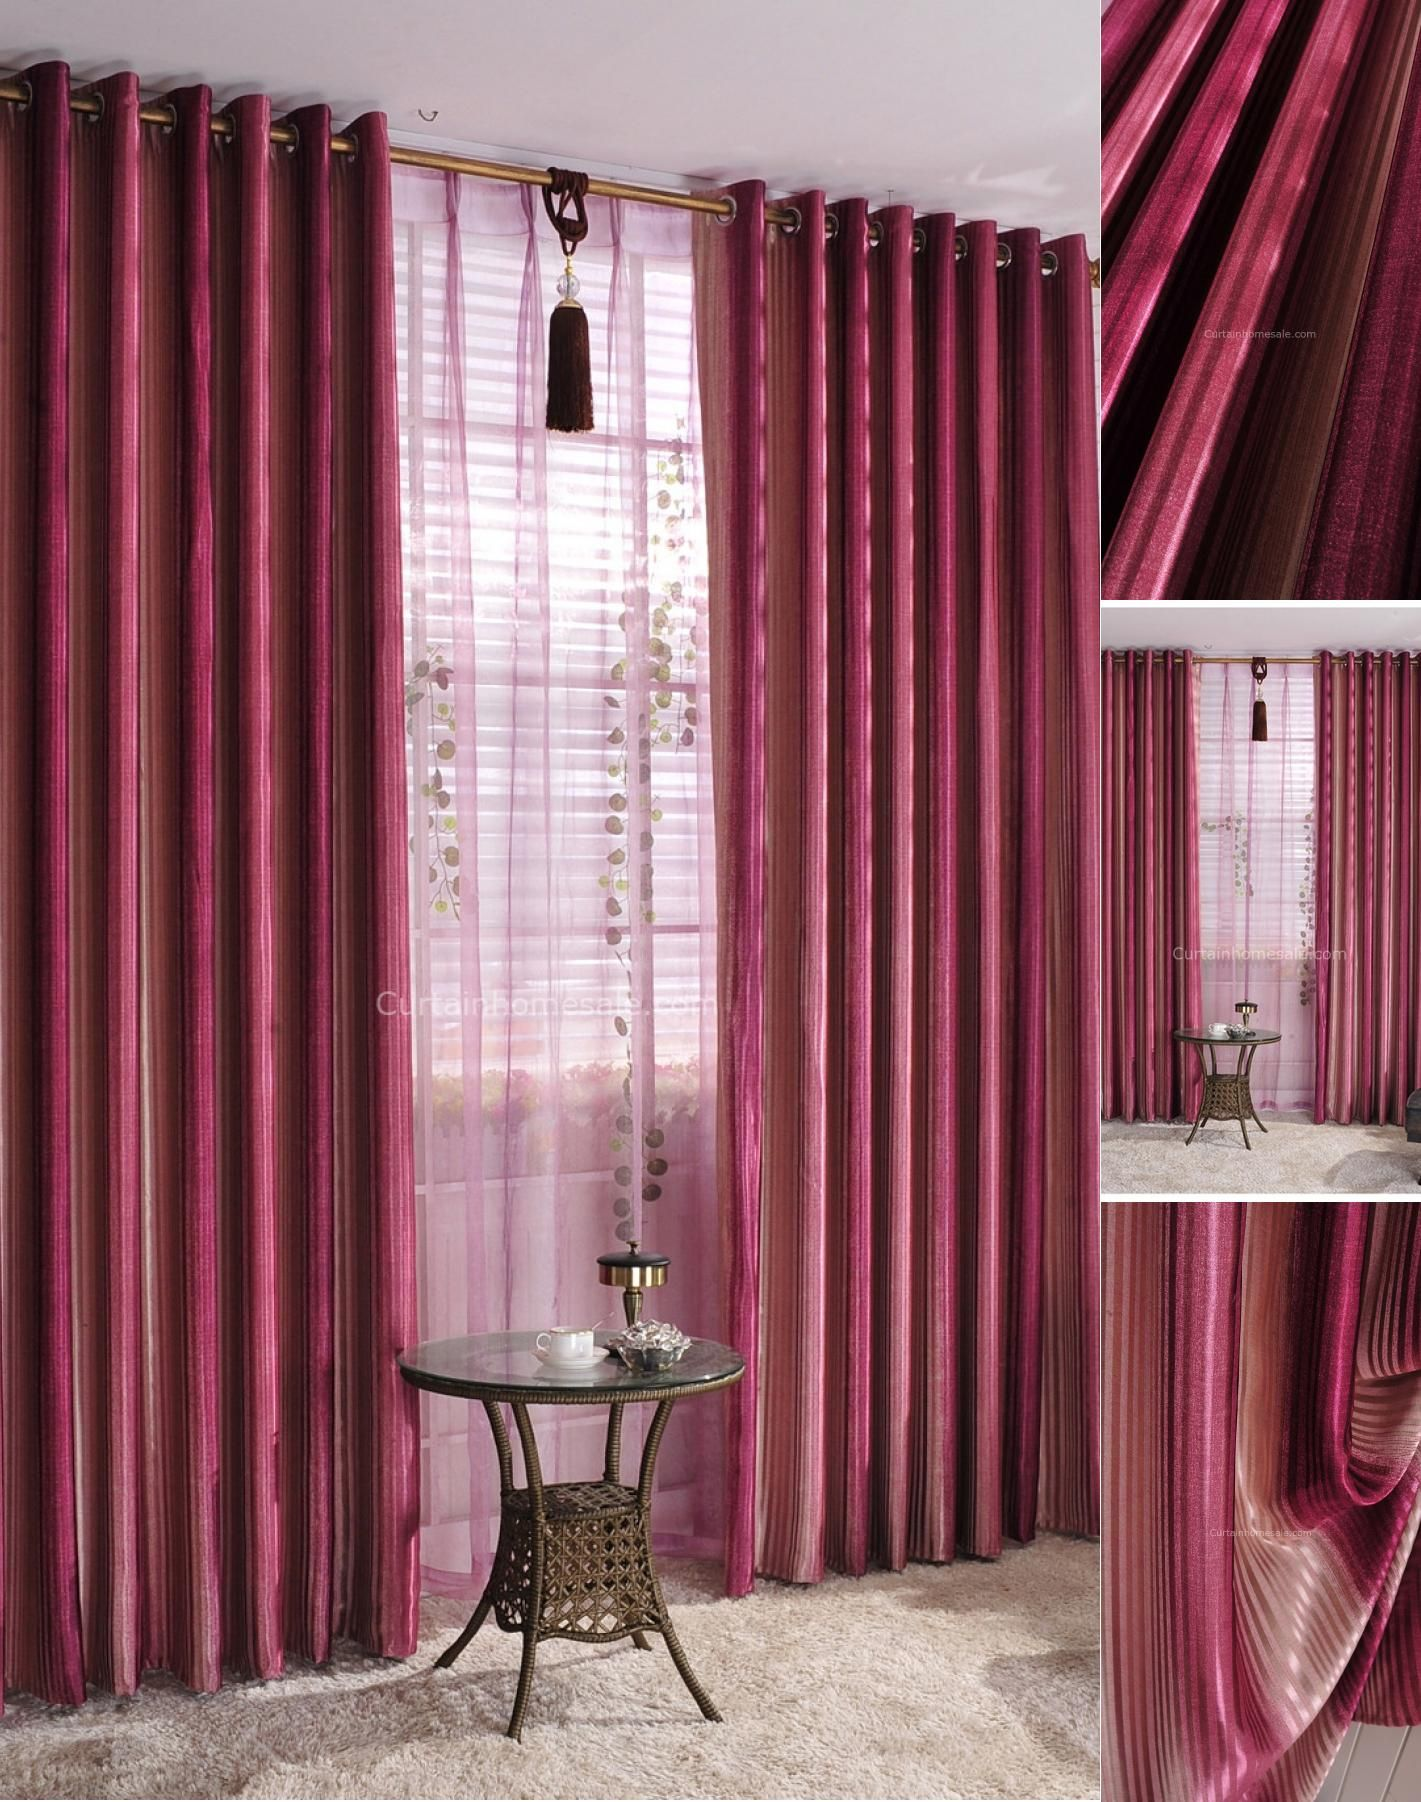 Spanish Style Curtains In Bright Color Red With Lines Spanish Style Homes Spanish Style Mediterranean Home Decor